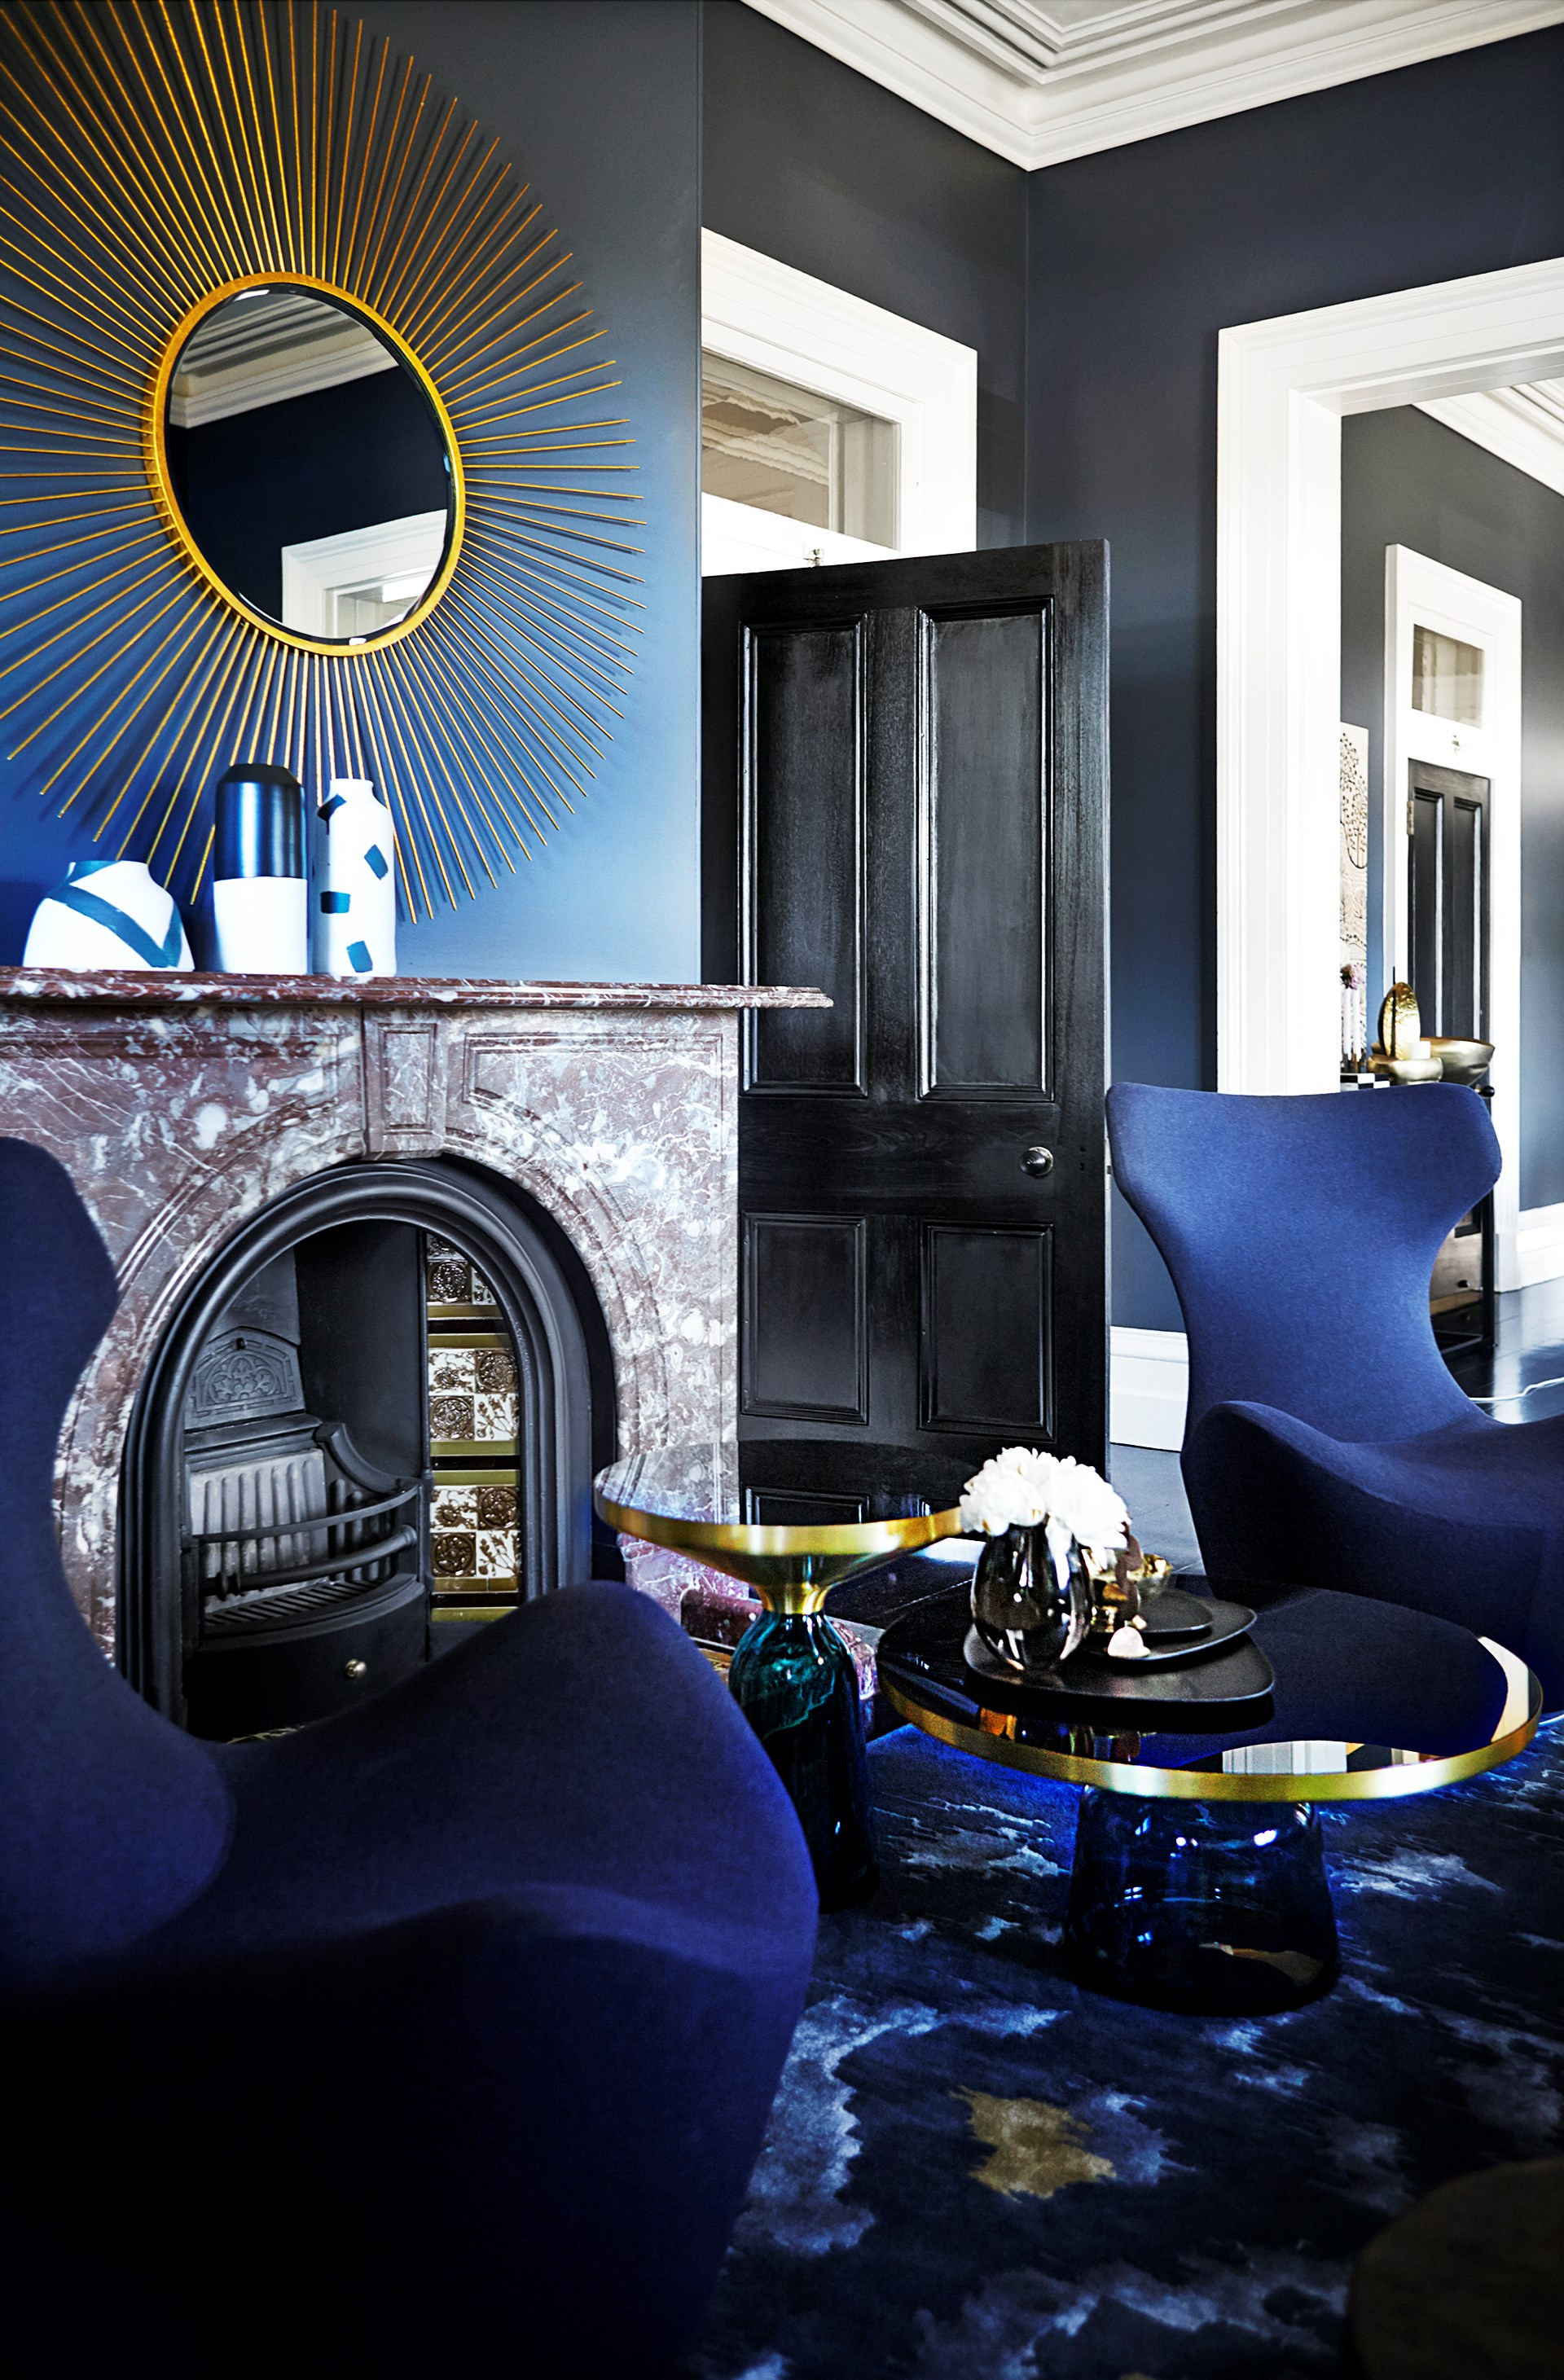 """Navy is the new black for home decor, up 80 percent in 2016. [> Check out this bold restoration of a Brisbane home](http://www.homestolove.com.au/bold-restoration-of-a-heritage-brisbane-landmark-4493